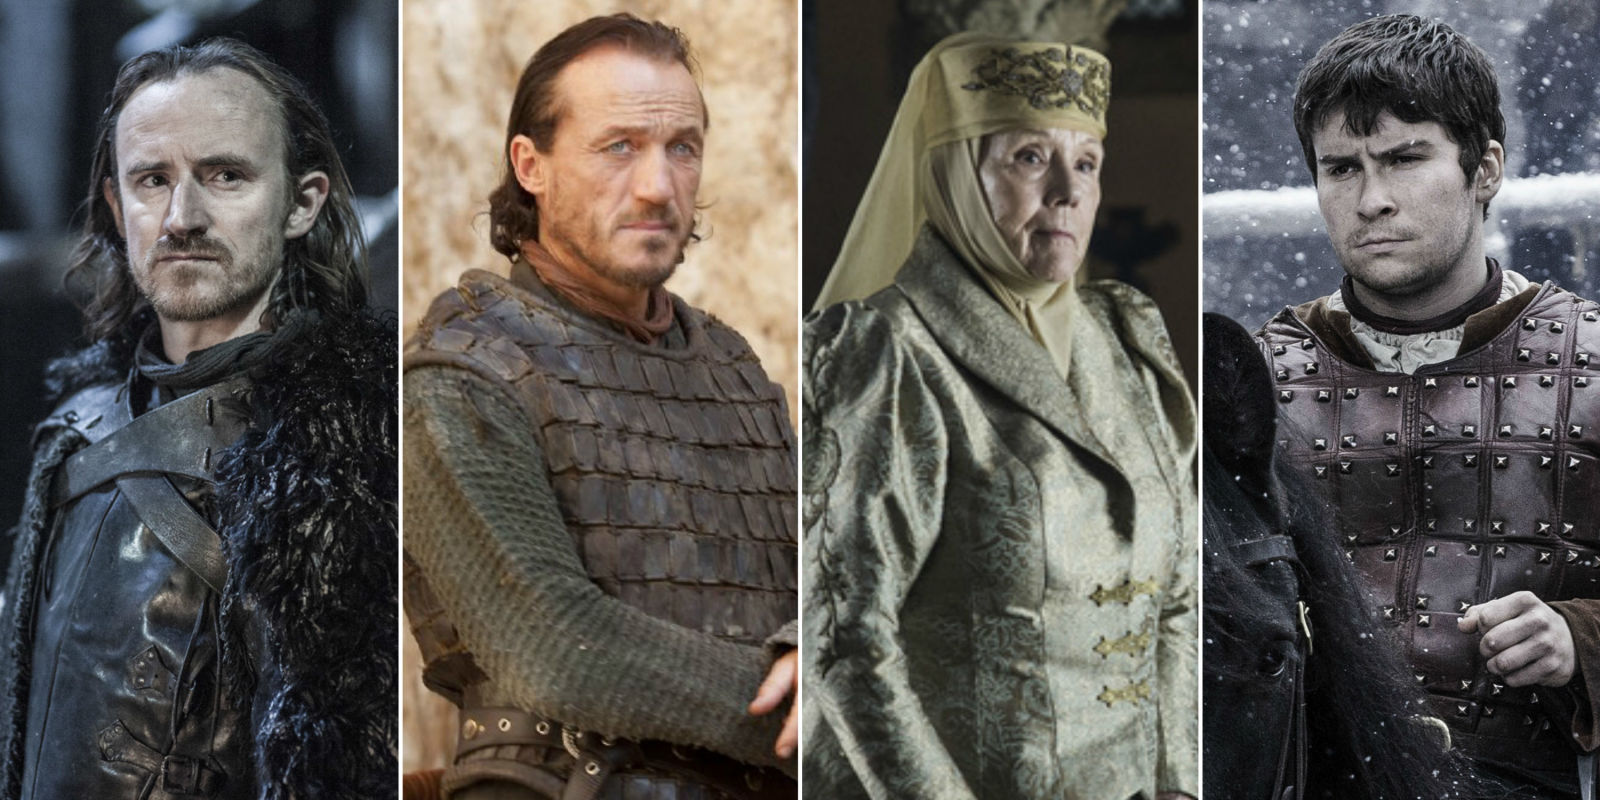 Game of Thrones: 9 of the most unsung heroes of Westeros